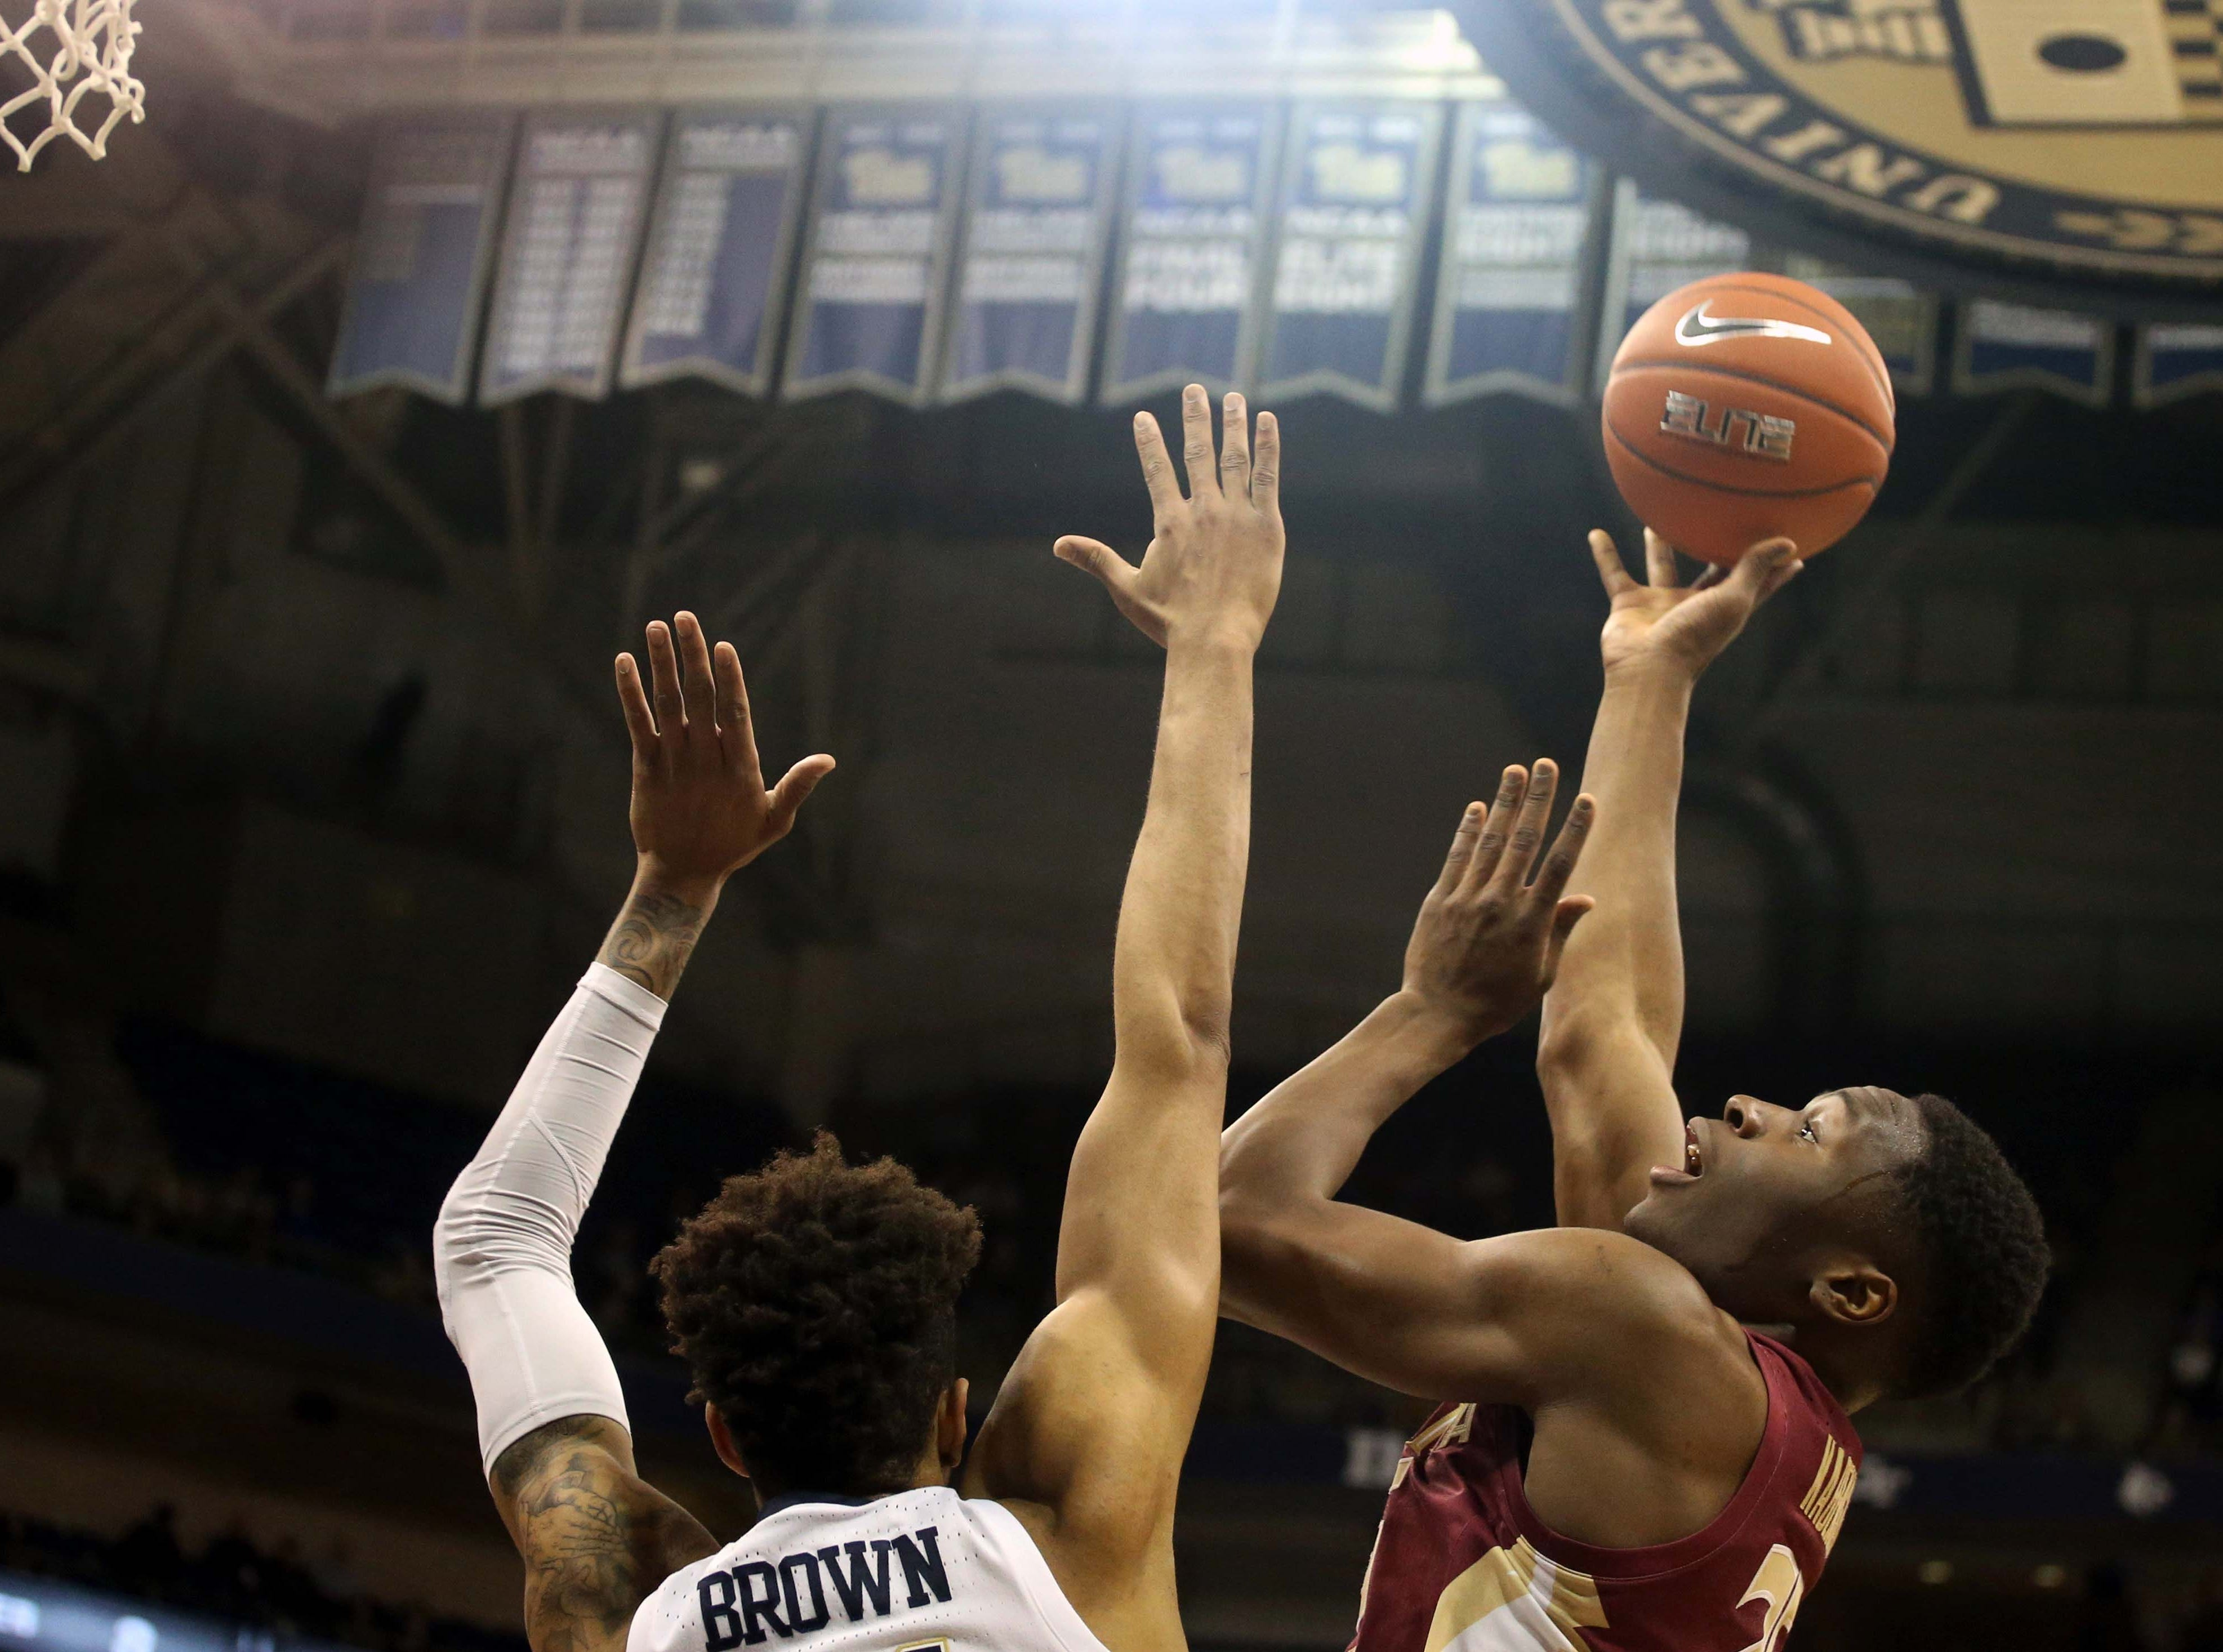 Jan 14, 2019; Pittsburgh, PA, USA; Florida State Seminoles forward Mfiondu Kabengele (25) shoots against Pittsburgh Panthers forward Terrell Brown (21) during the first half at the Petersen Events Center. Mandatory Credit: Charles LeClaire-USA TODAY Sports